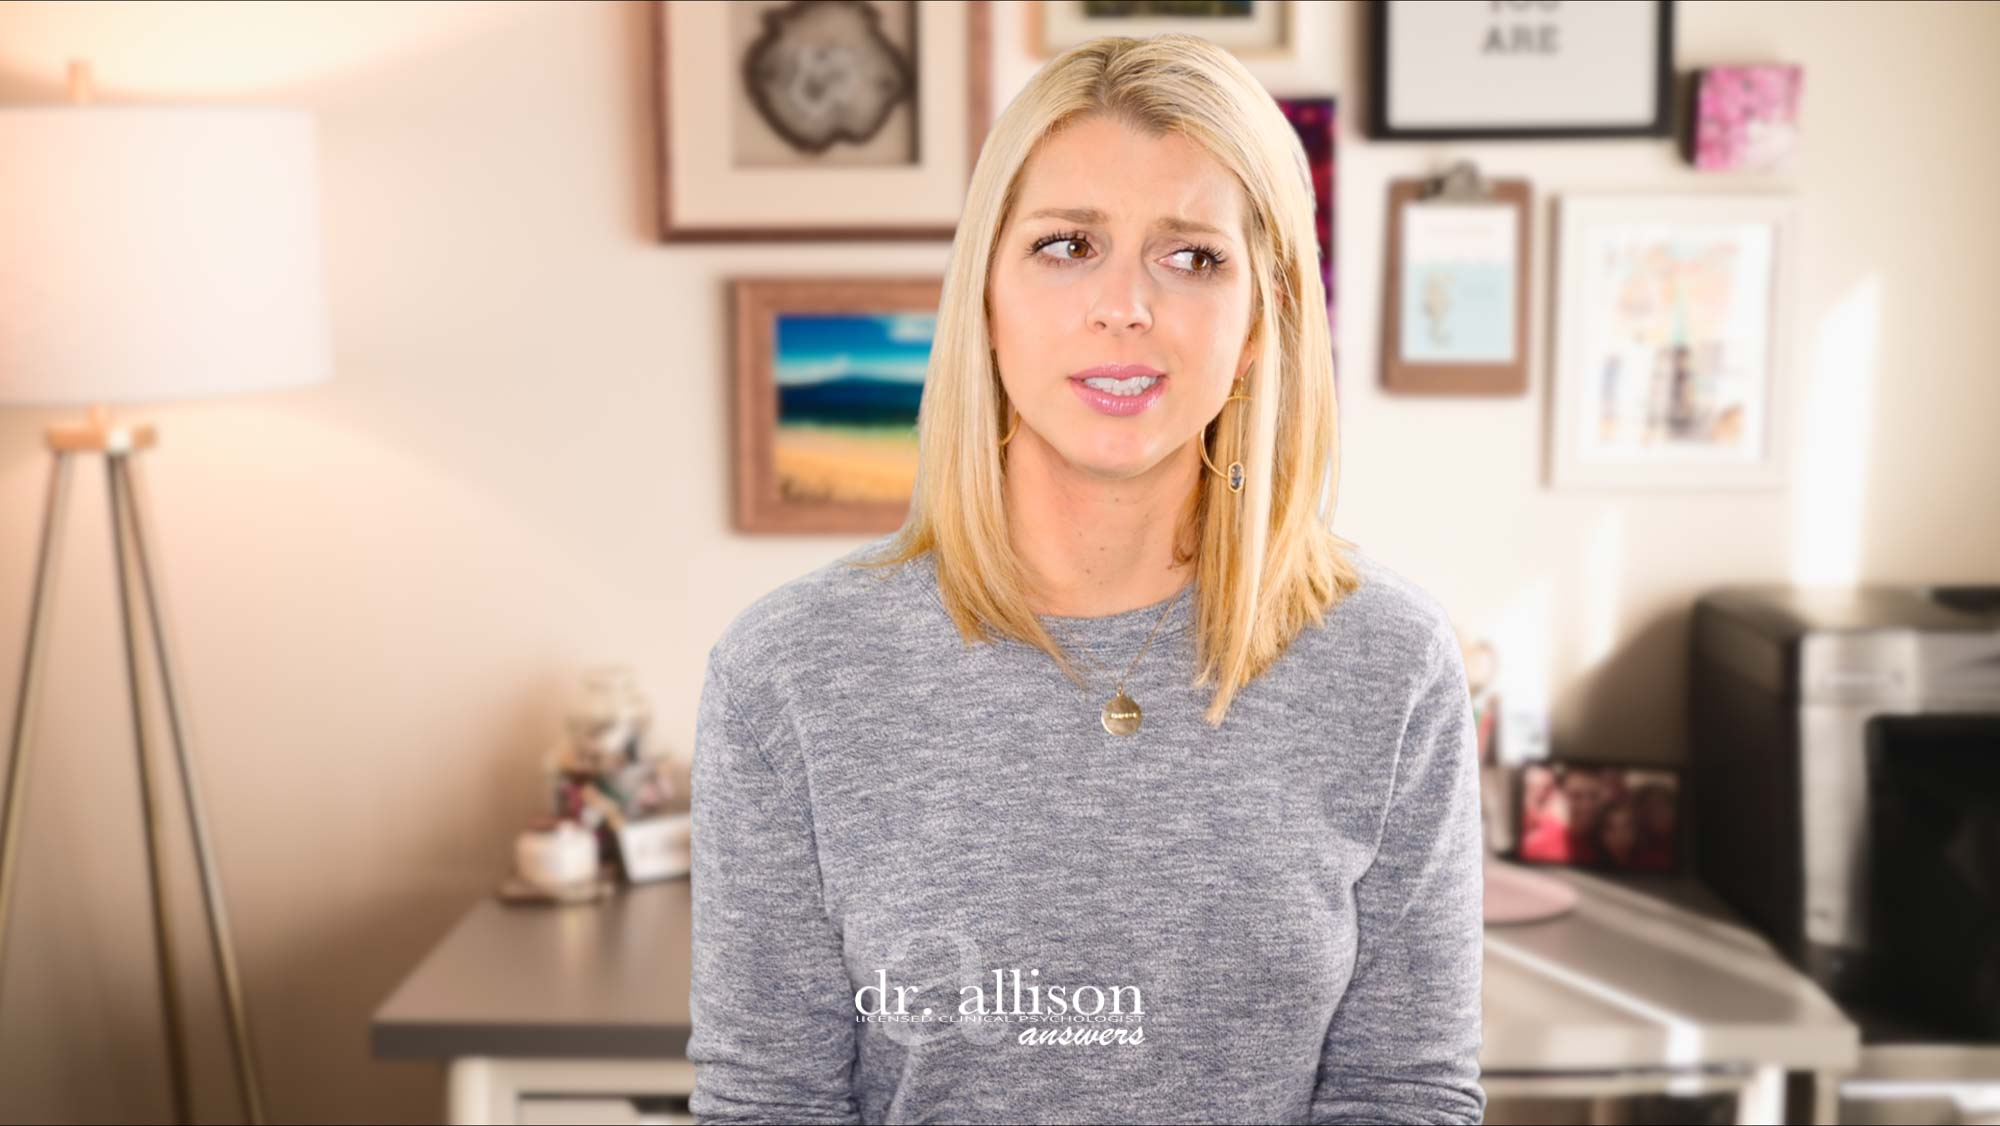 Is It OK to Feel Bad When Other People Have It Worse? via Dr. Allison Answers